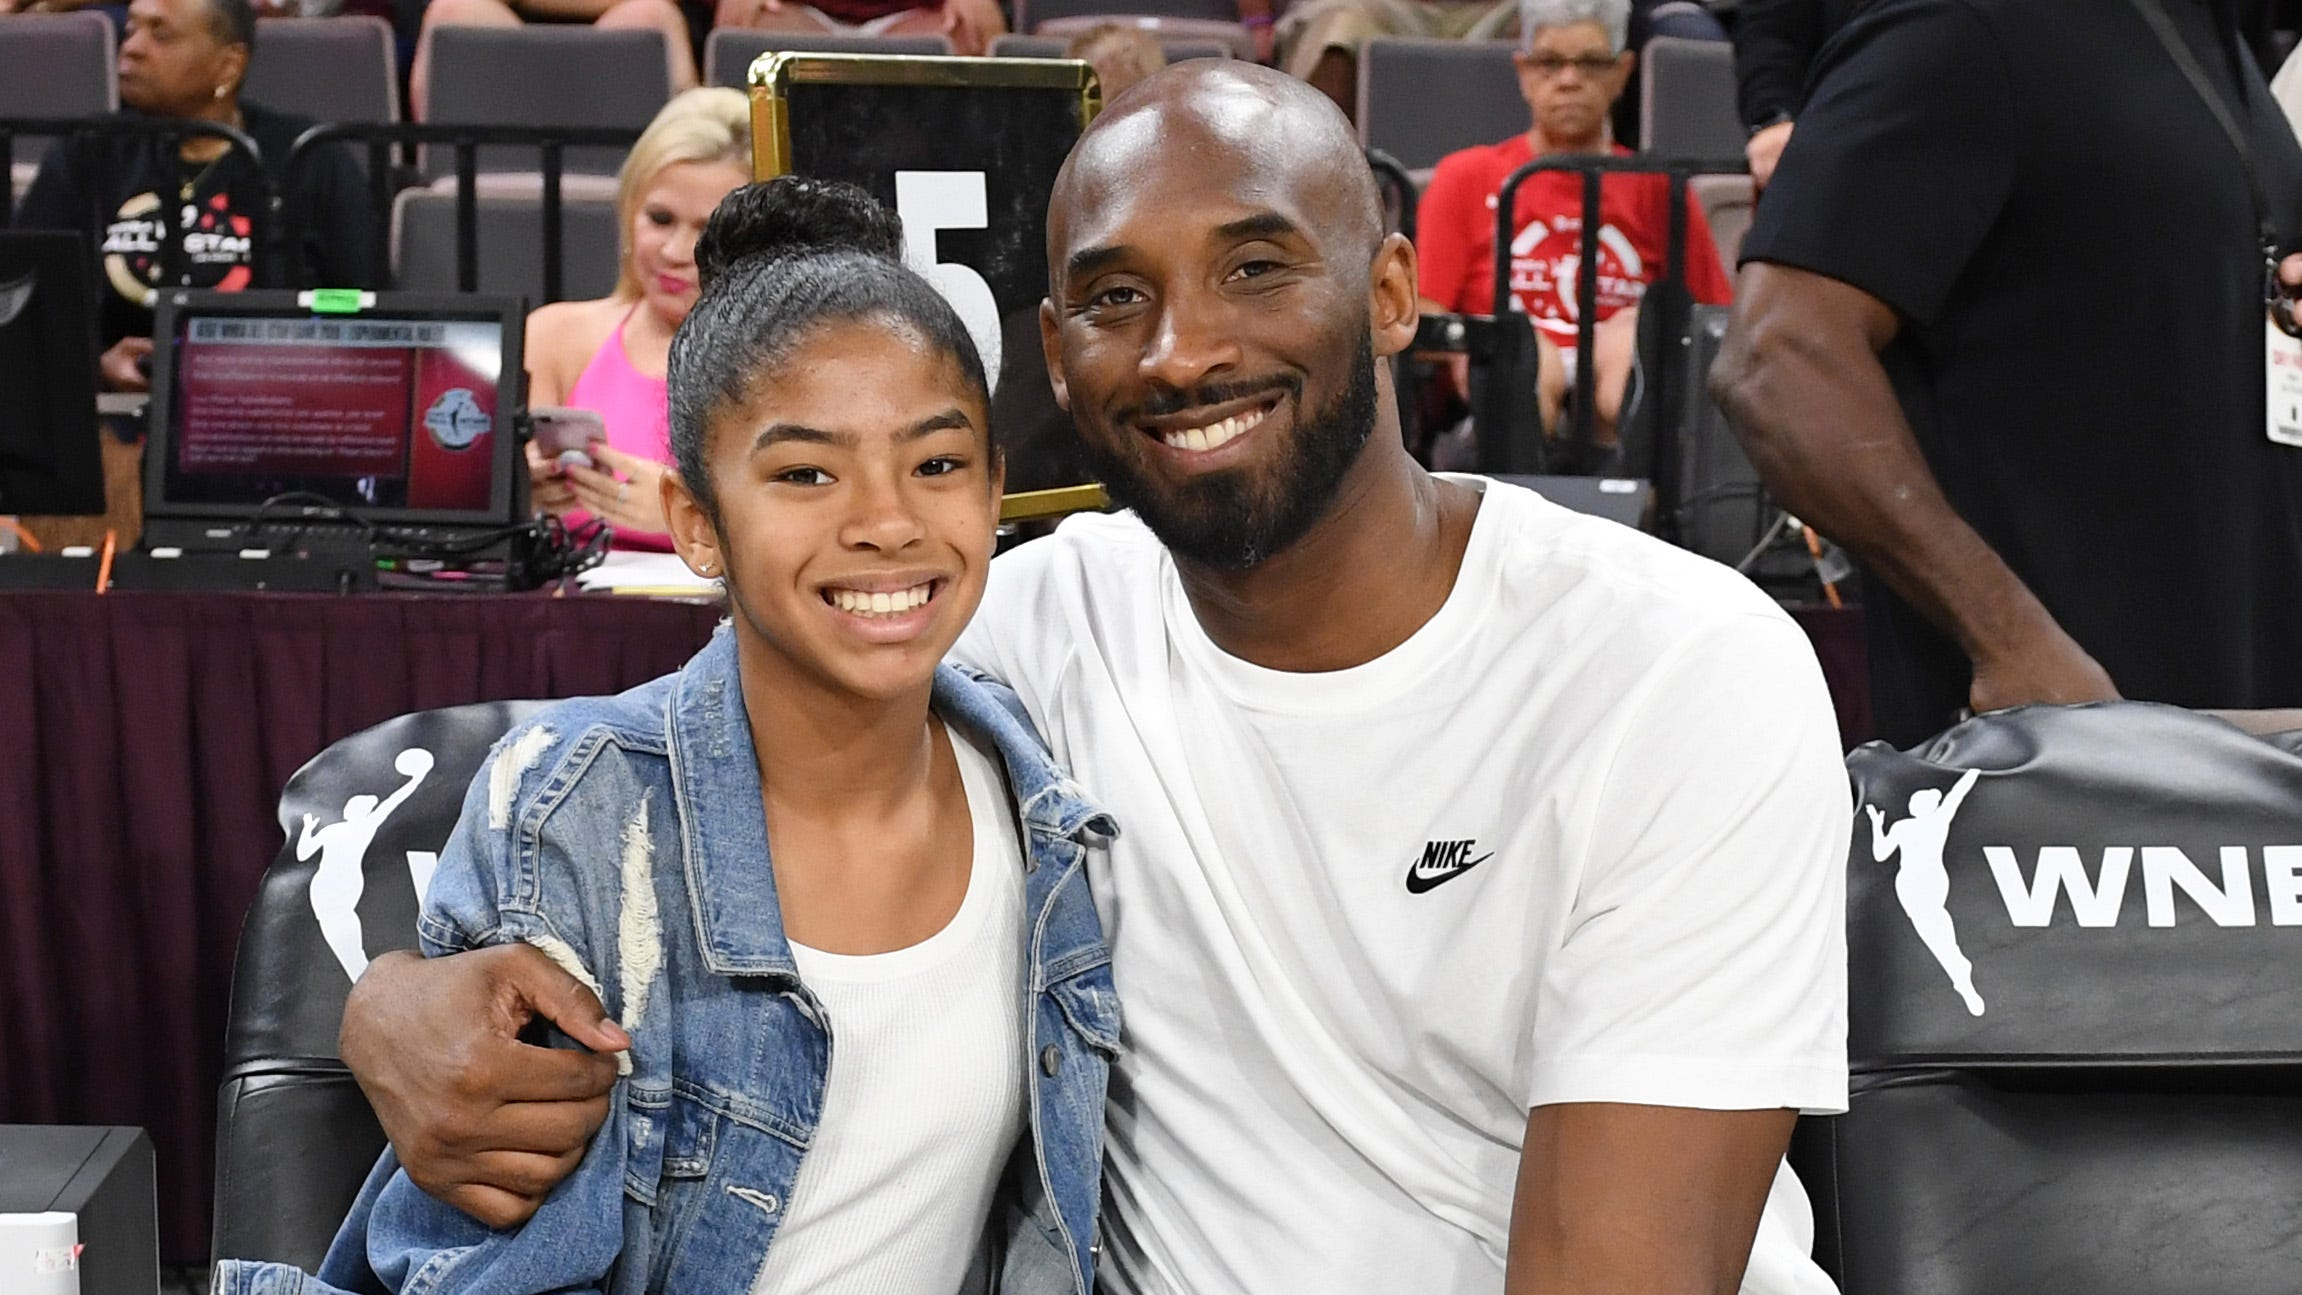 Kobe Bryant S 13 Year Old Daughter Gianna Also Died In Crash